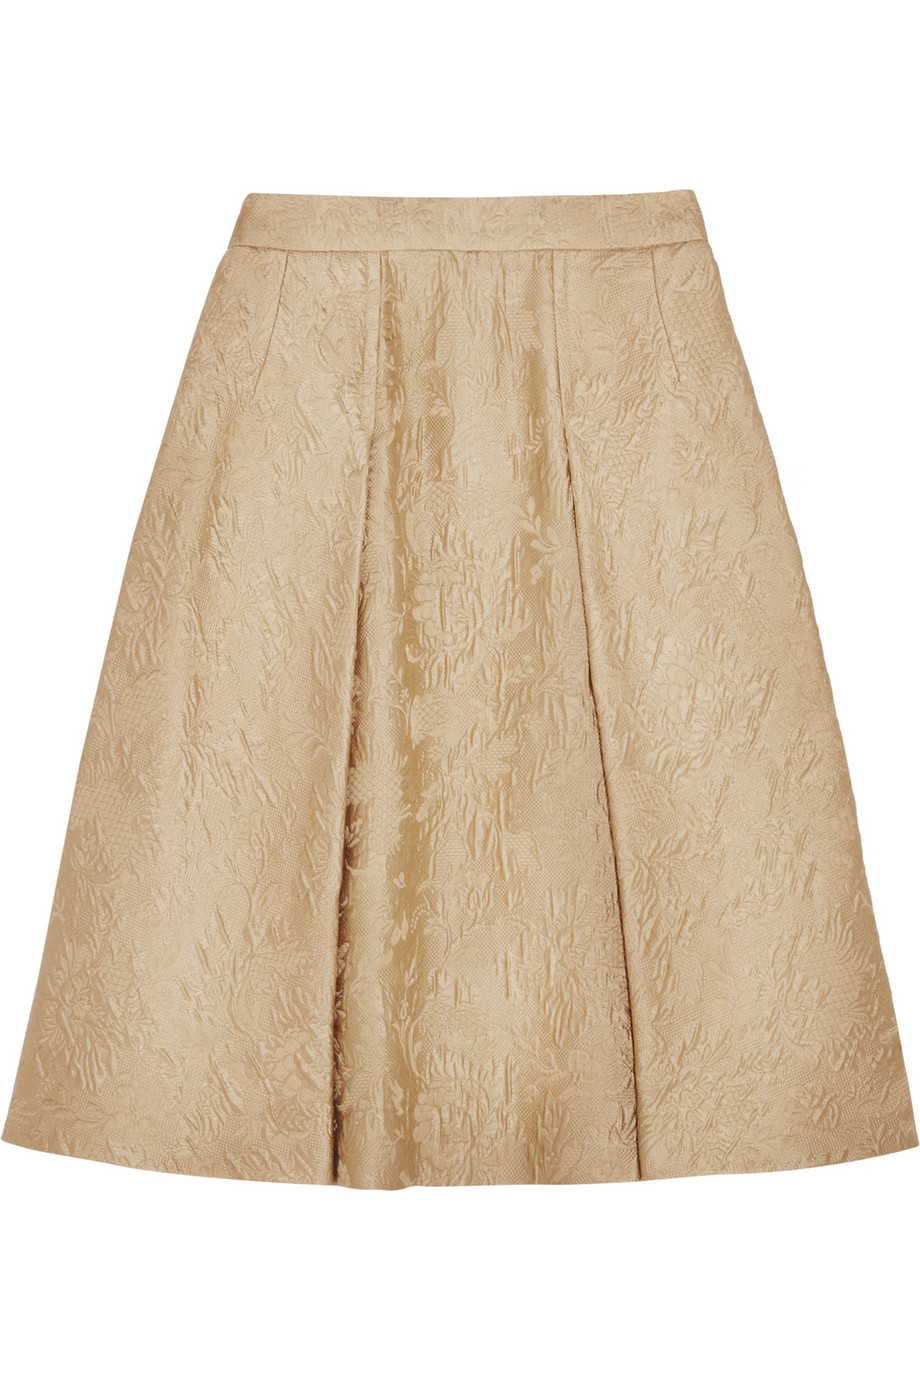 Dolce & Gabbana Pleated cotton and silk-blend jacquard skirt – 50% at THE OUTNET.COM